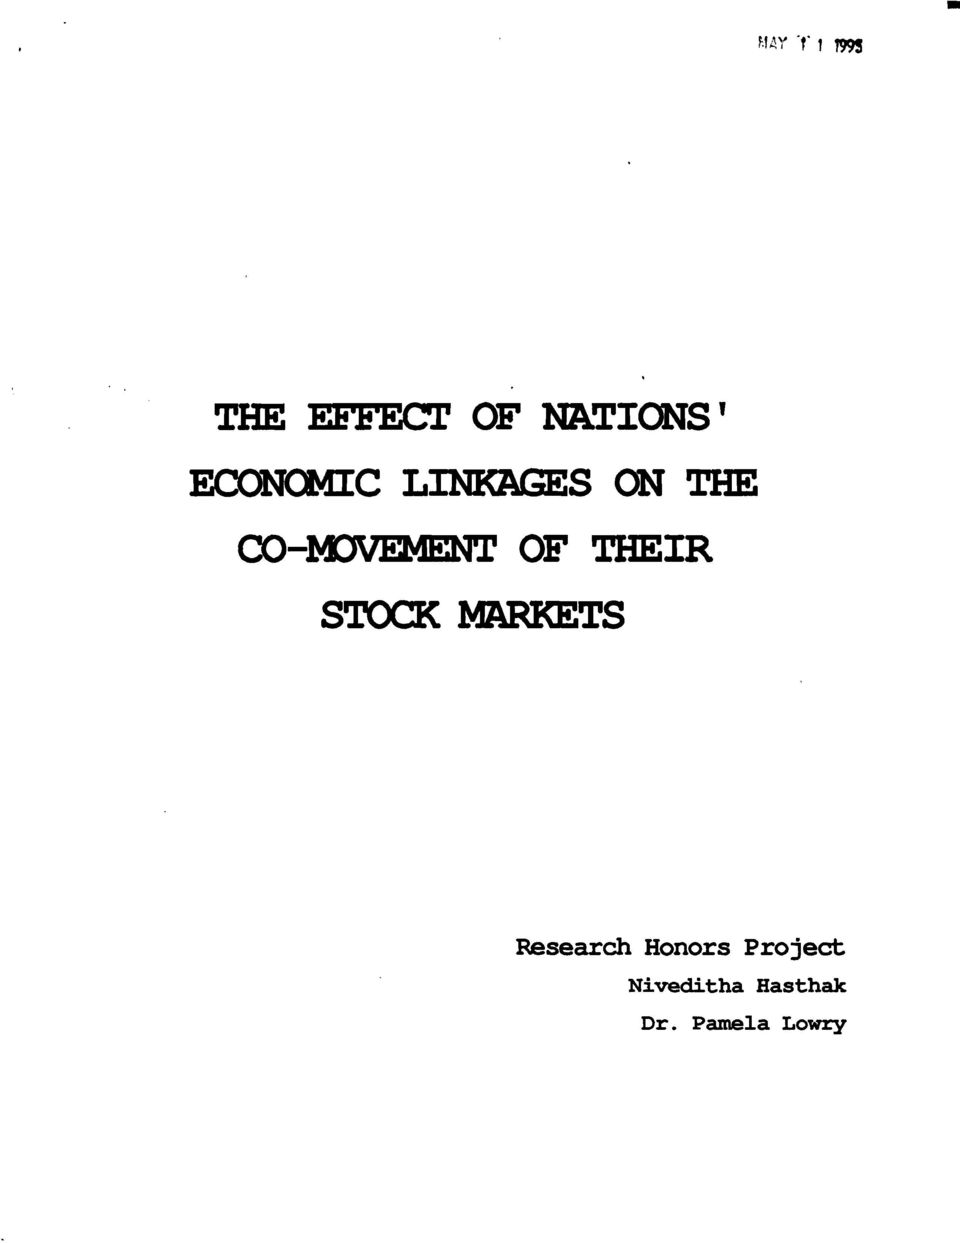 THEIR STOCK MARKETS Research Honors